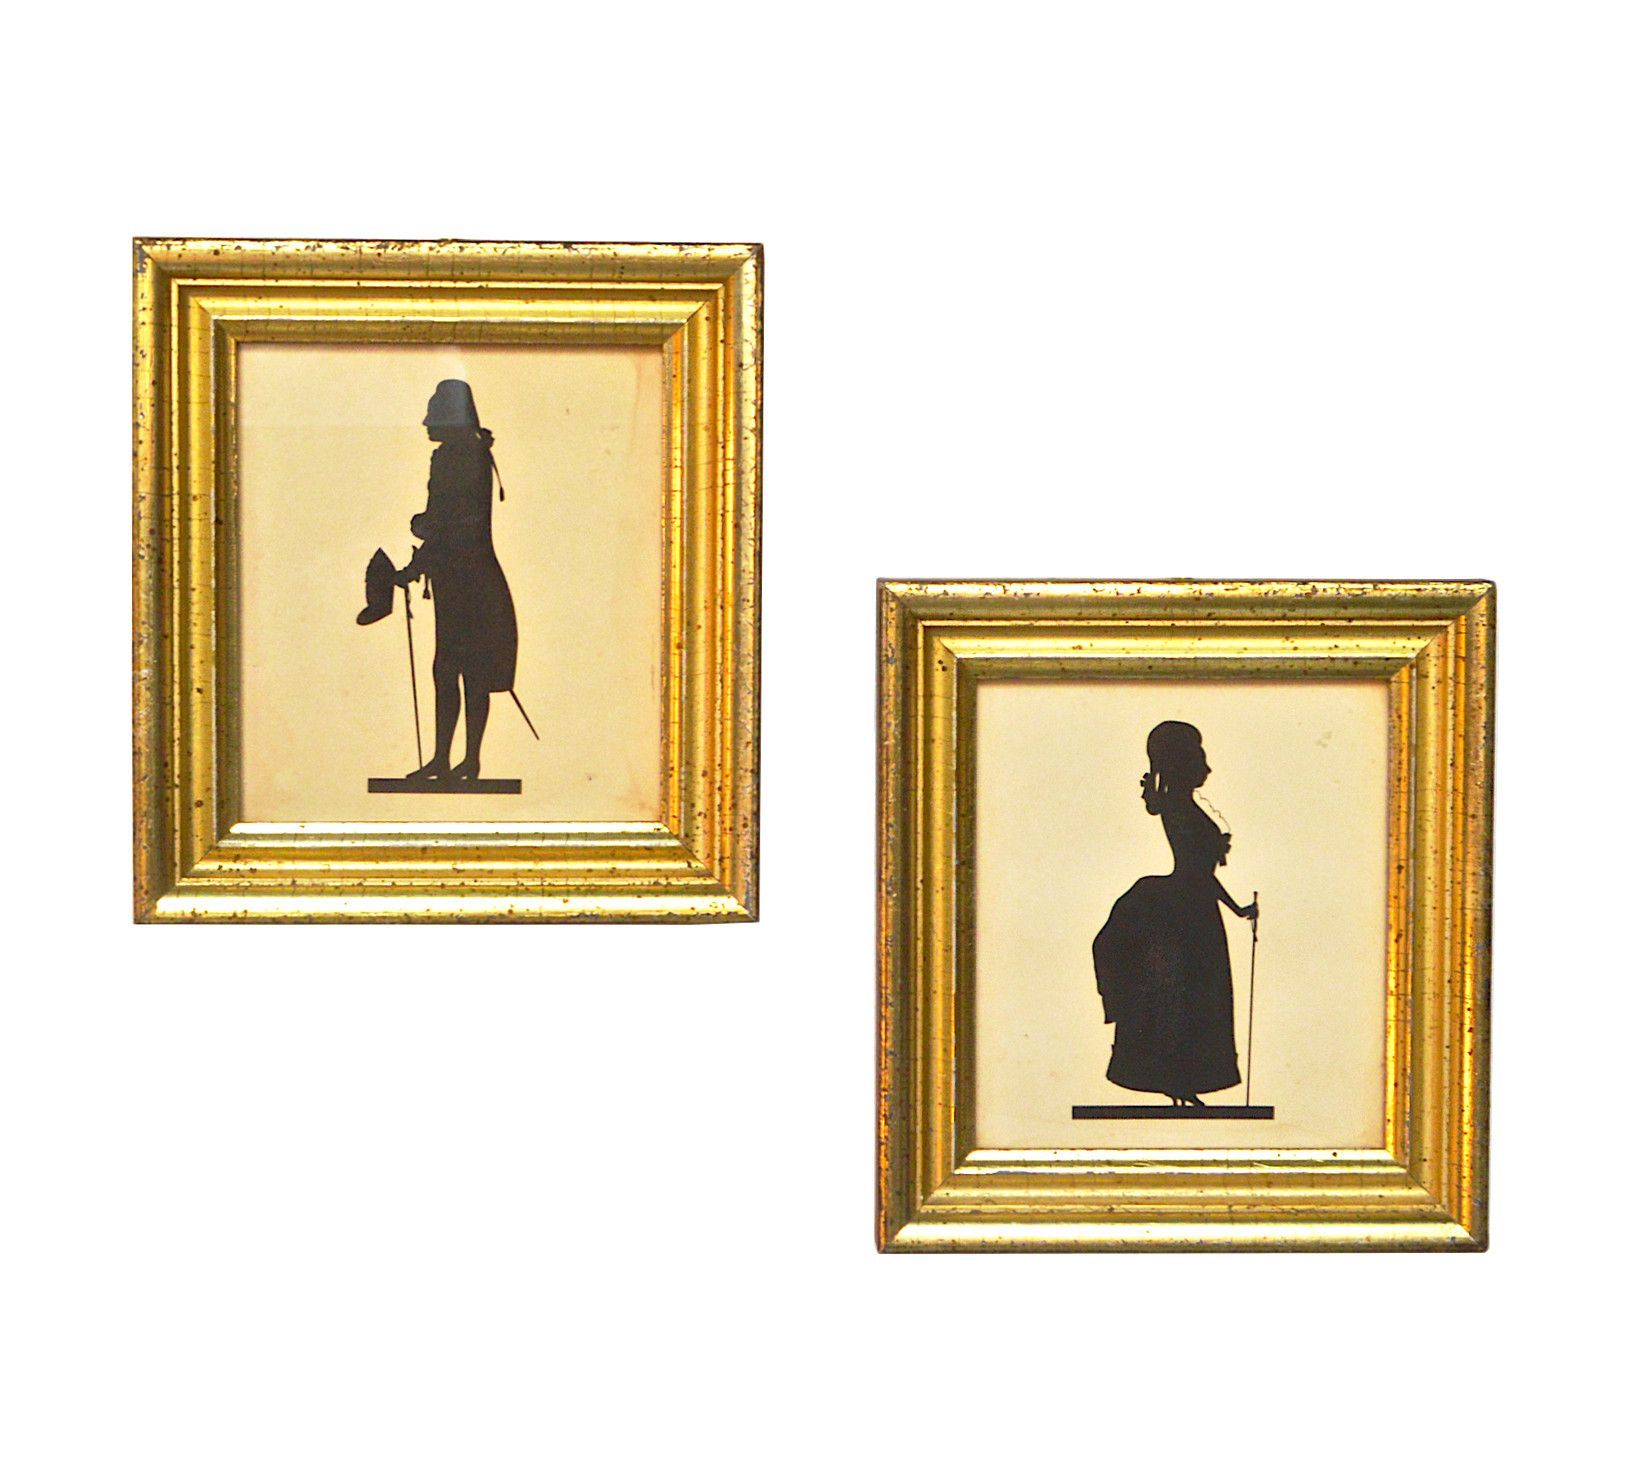 Borghese Framed Silhouette Pair | Products | Pinterest | Silhouettes ...